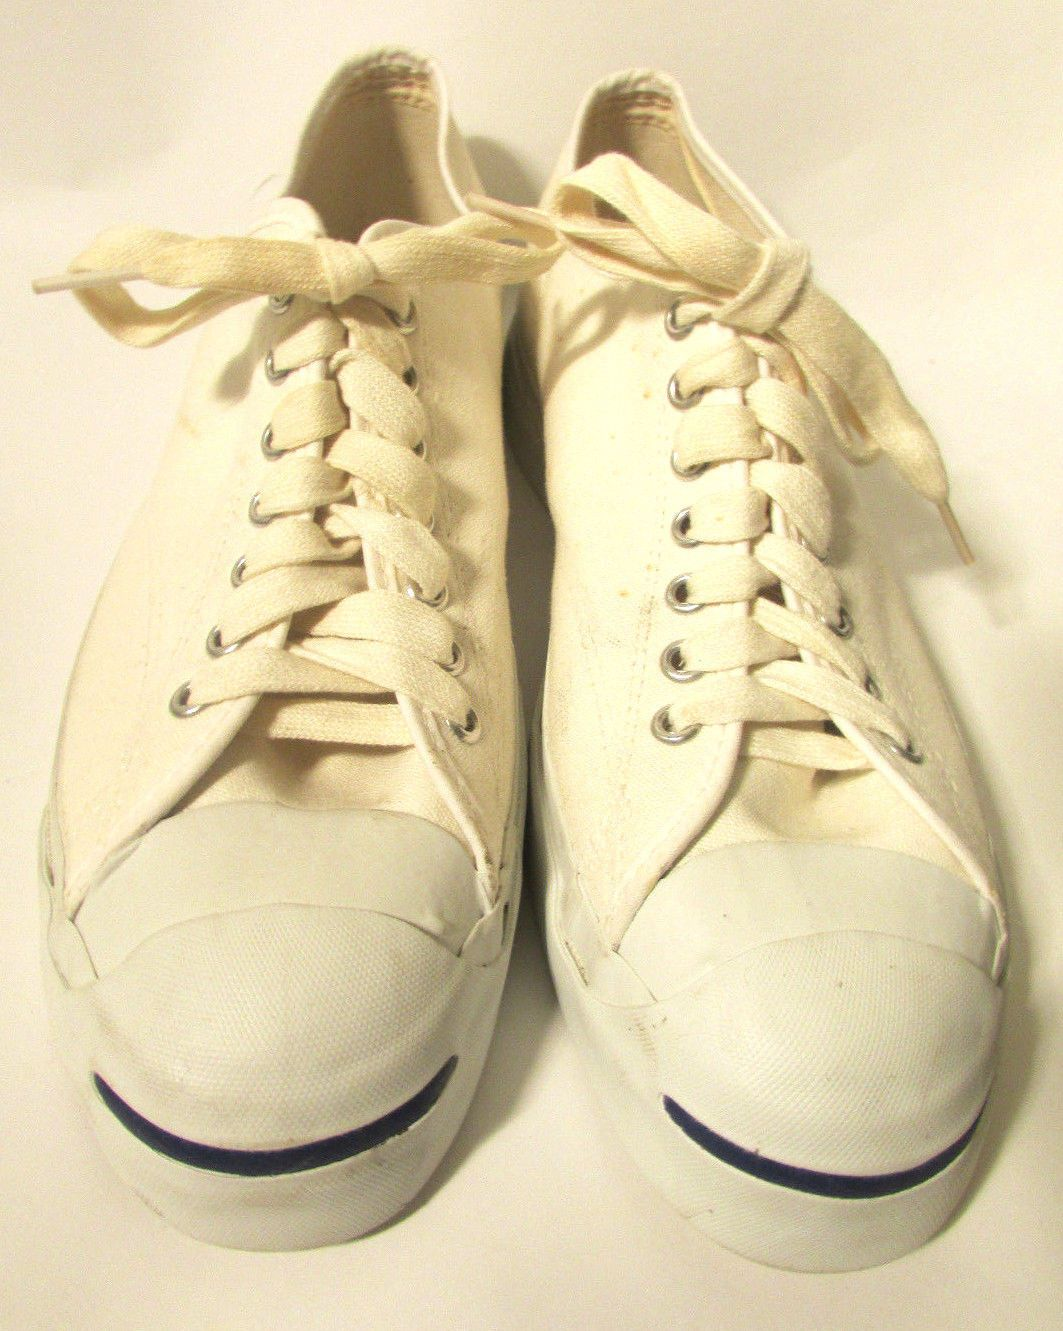 19144e4ad79c RARE Jack Purcell Men s Vintage Goodrich Posture Sanitized P.F Made in USA  Sz 9